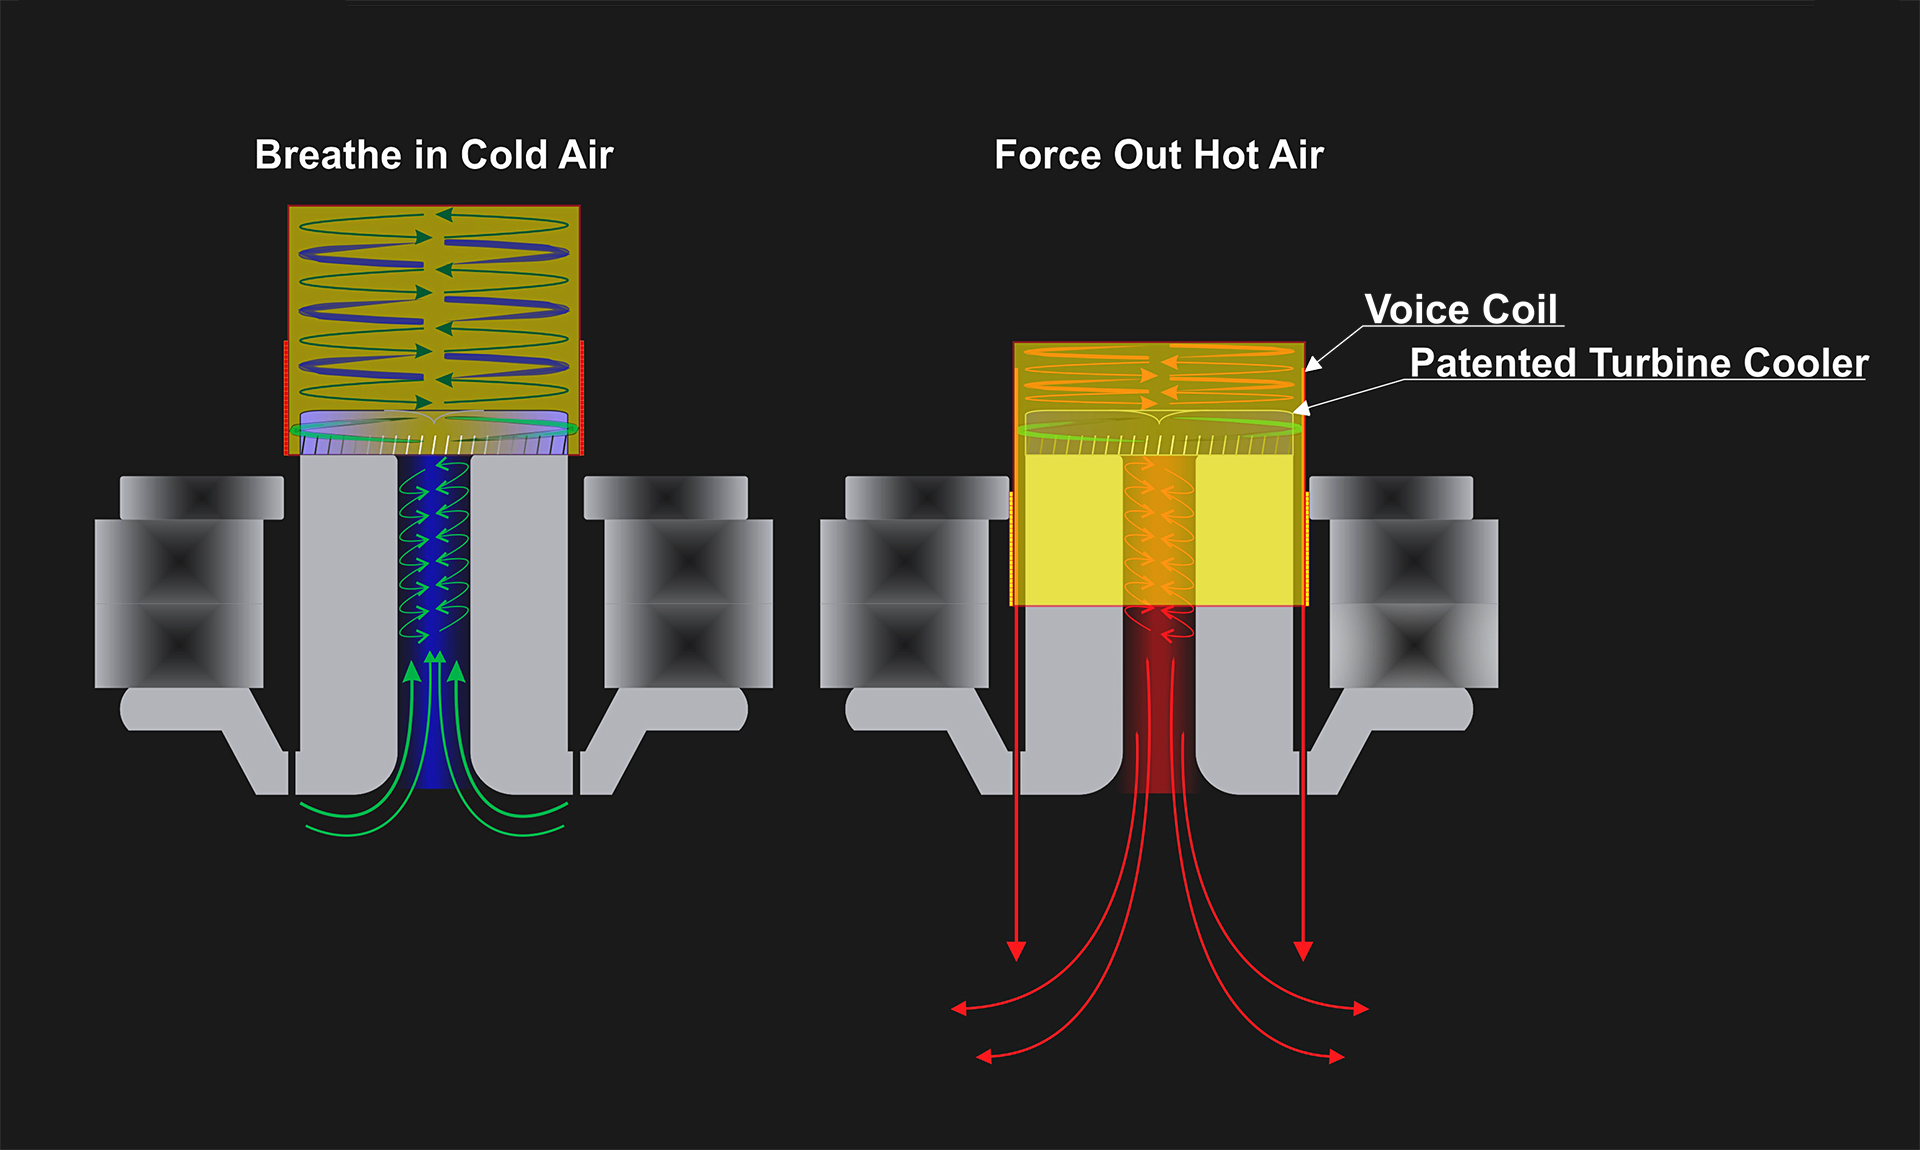 Subzero 12 Dual Voice Coil Wiring Options Is Equipped With The Patented Tct Turbine Cooled Transducer Technology Creates Cooling Airflow Similar To A Tornado Around